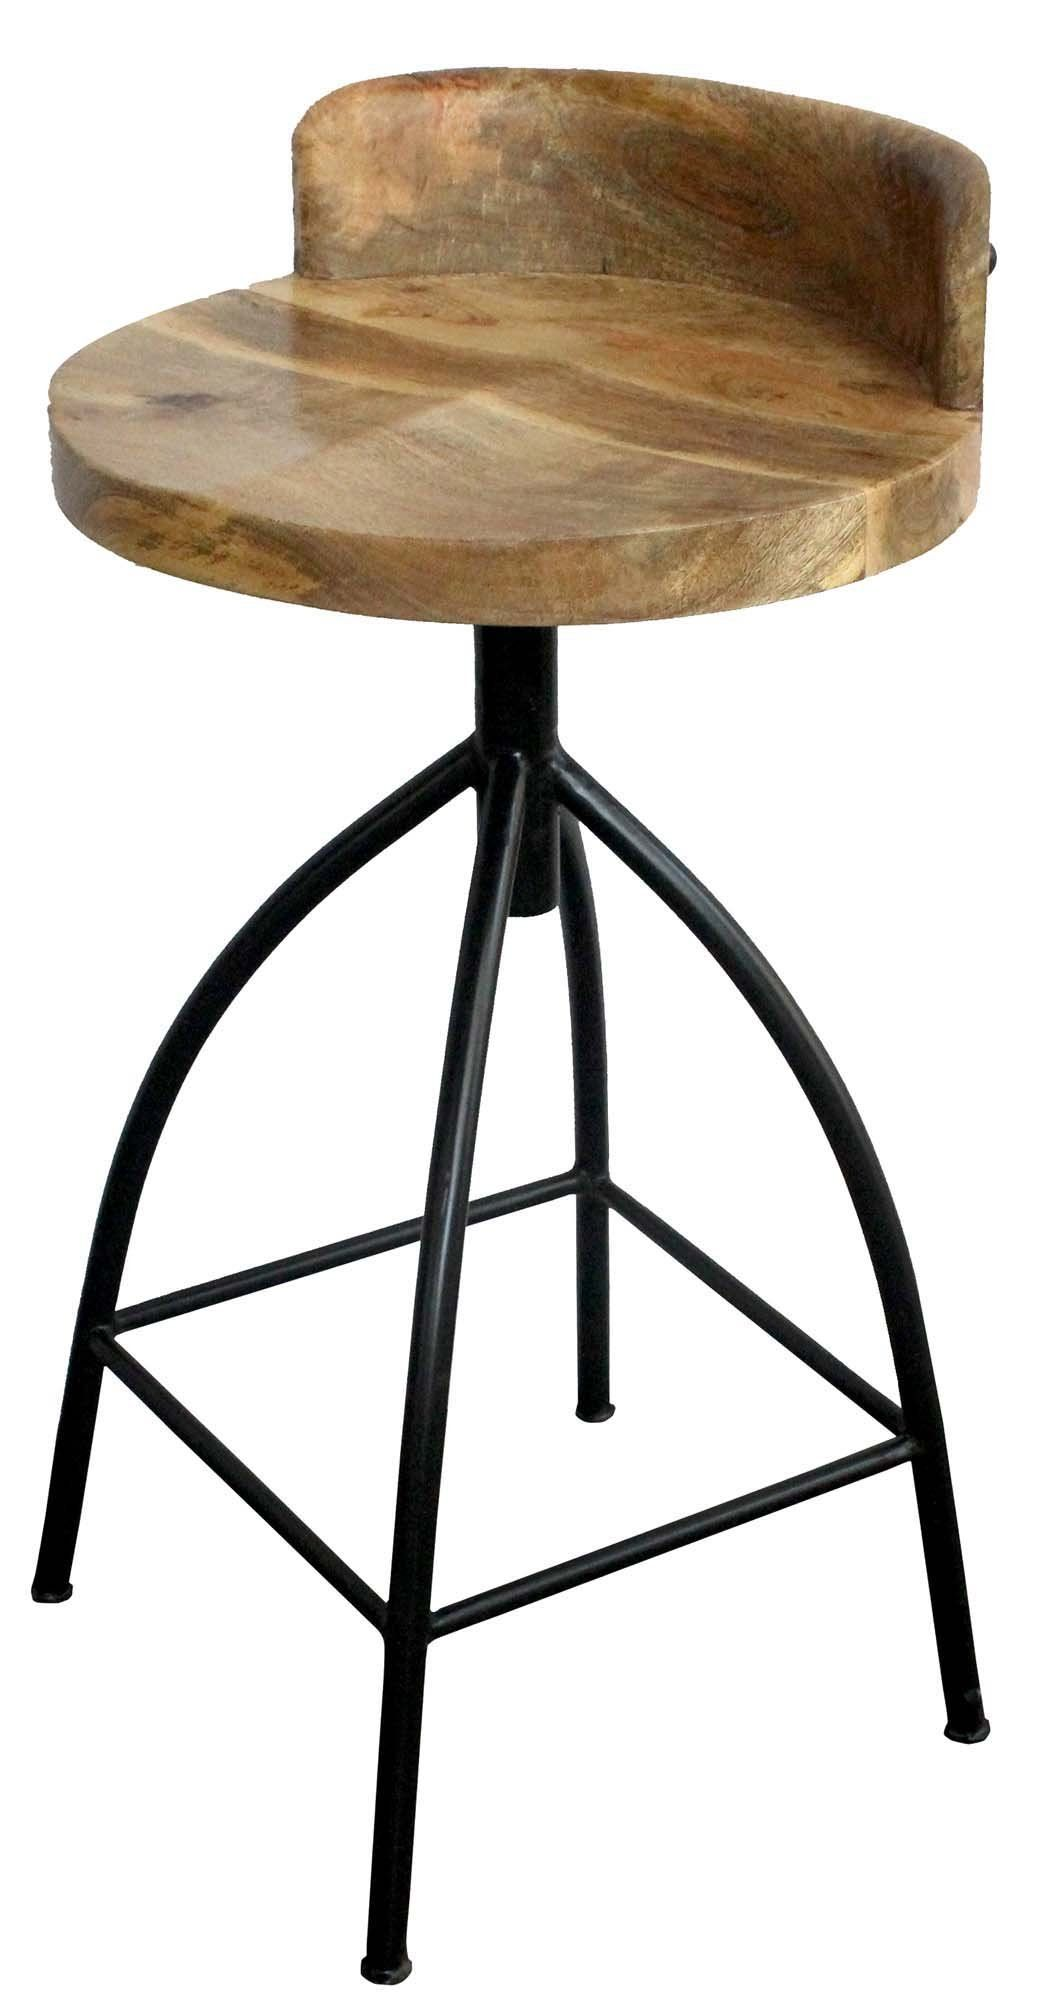 28 Industrial Style Adjustable Counter Stool Black And Brown By The Urban Port Counter Height Stools Swivel Bar Stools Bar Stools